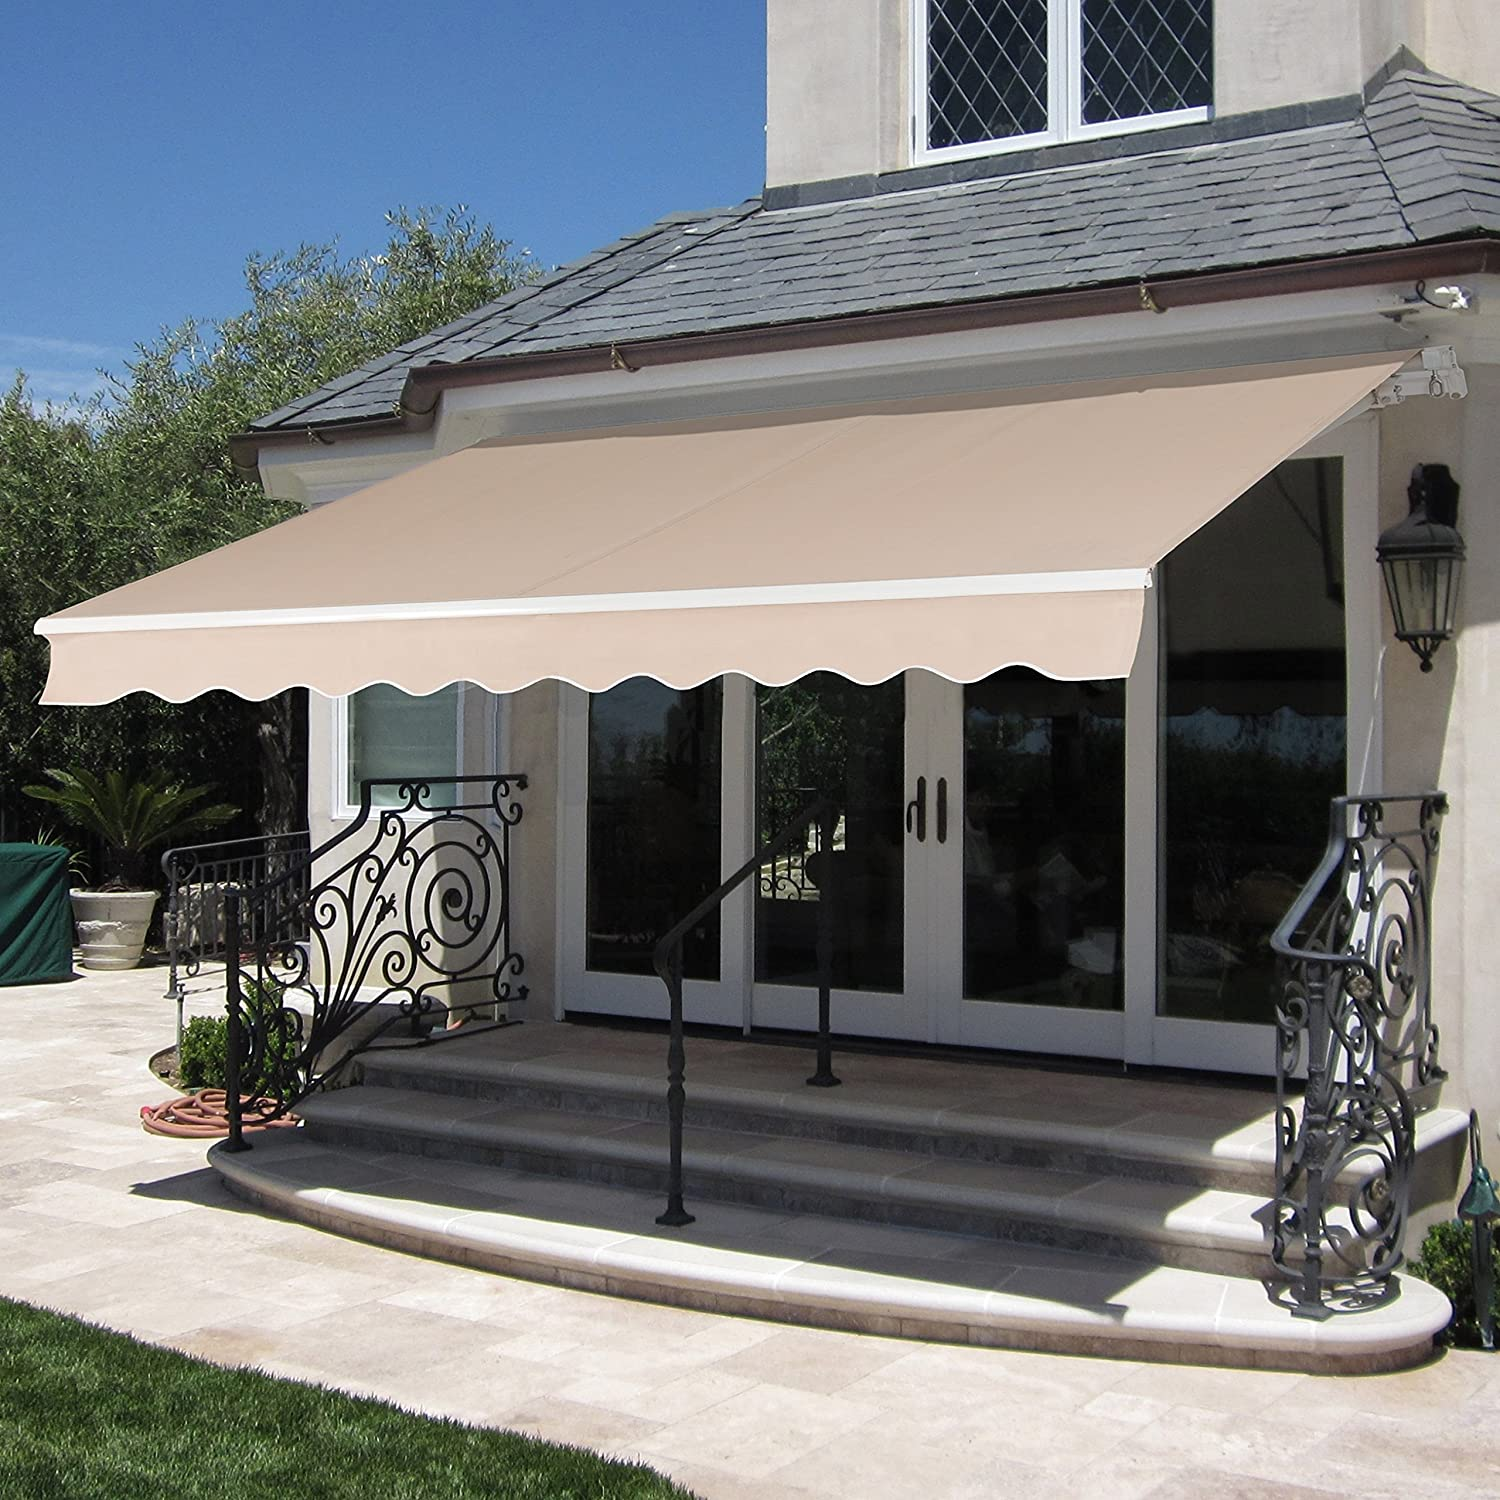 Awesome Amazon.com : Best Choice Products Patio Manual Patio 8.2u0027x6.5u0027 Retractable  Deck Awning Sunshade Shelter Canopy Beige : Garden U0026 Outdoor